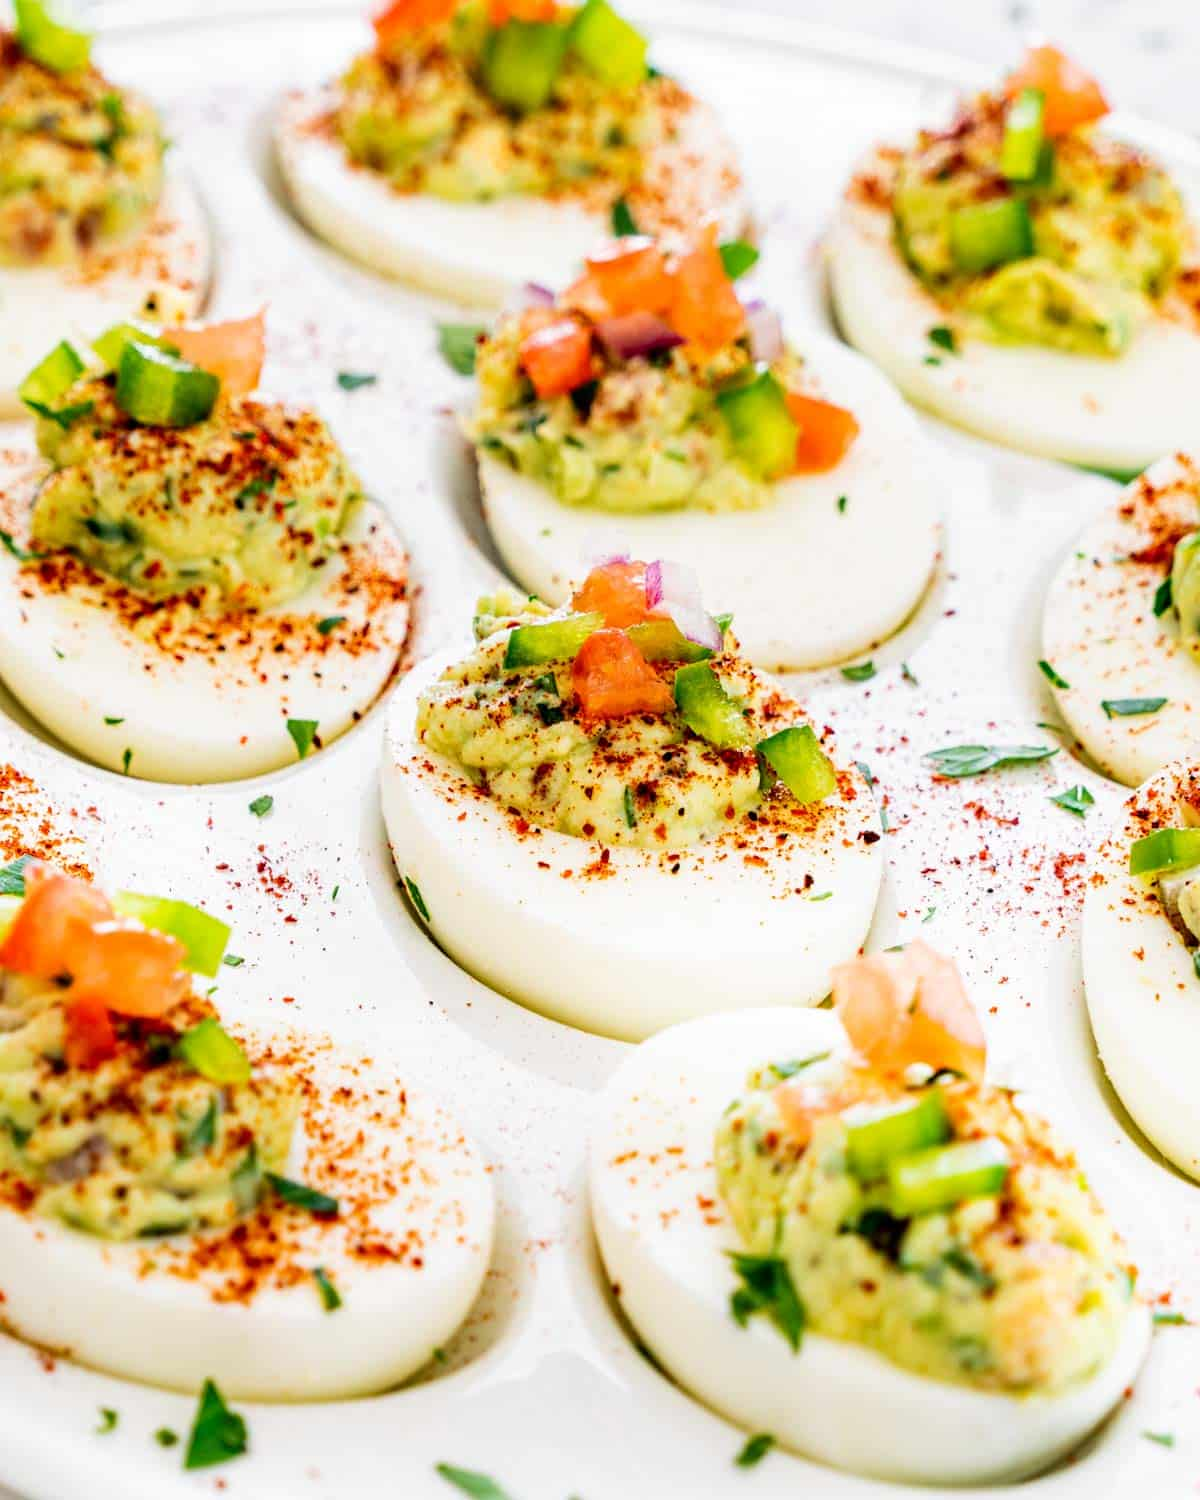 closeup of guacamole deviled eggs garnished with chili powder and cilantro